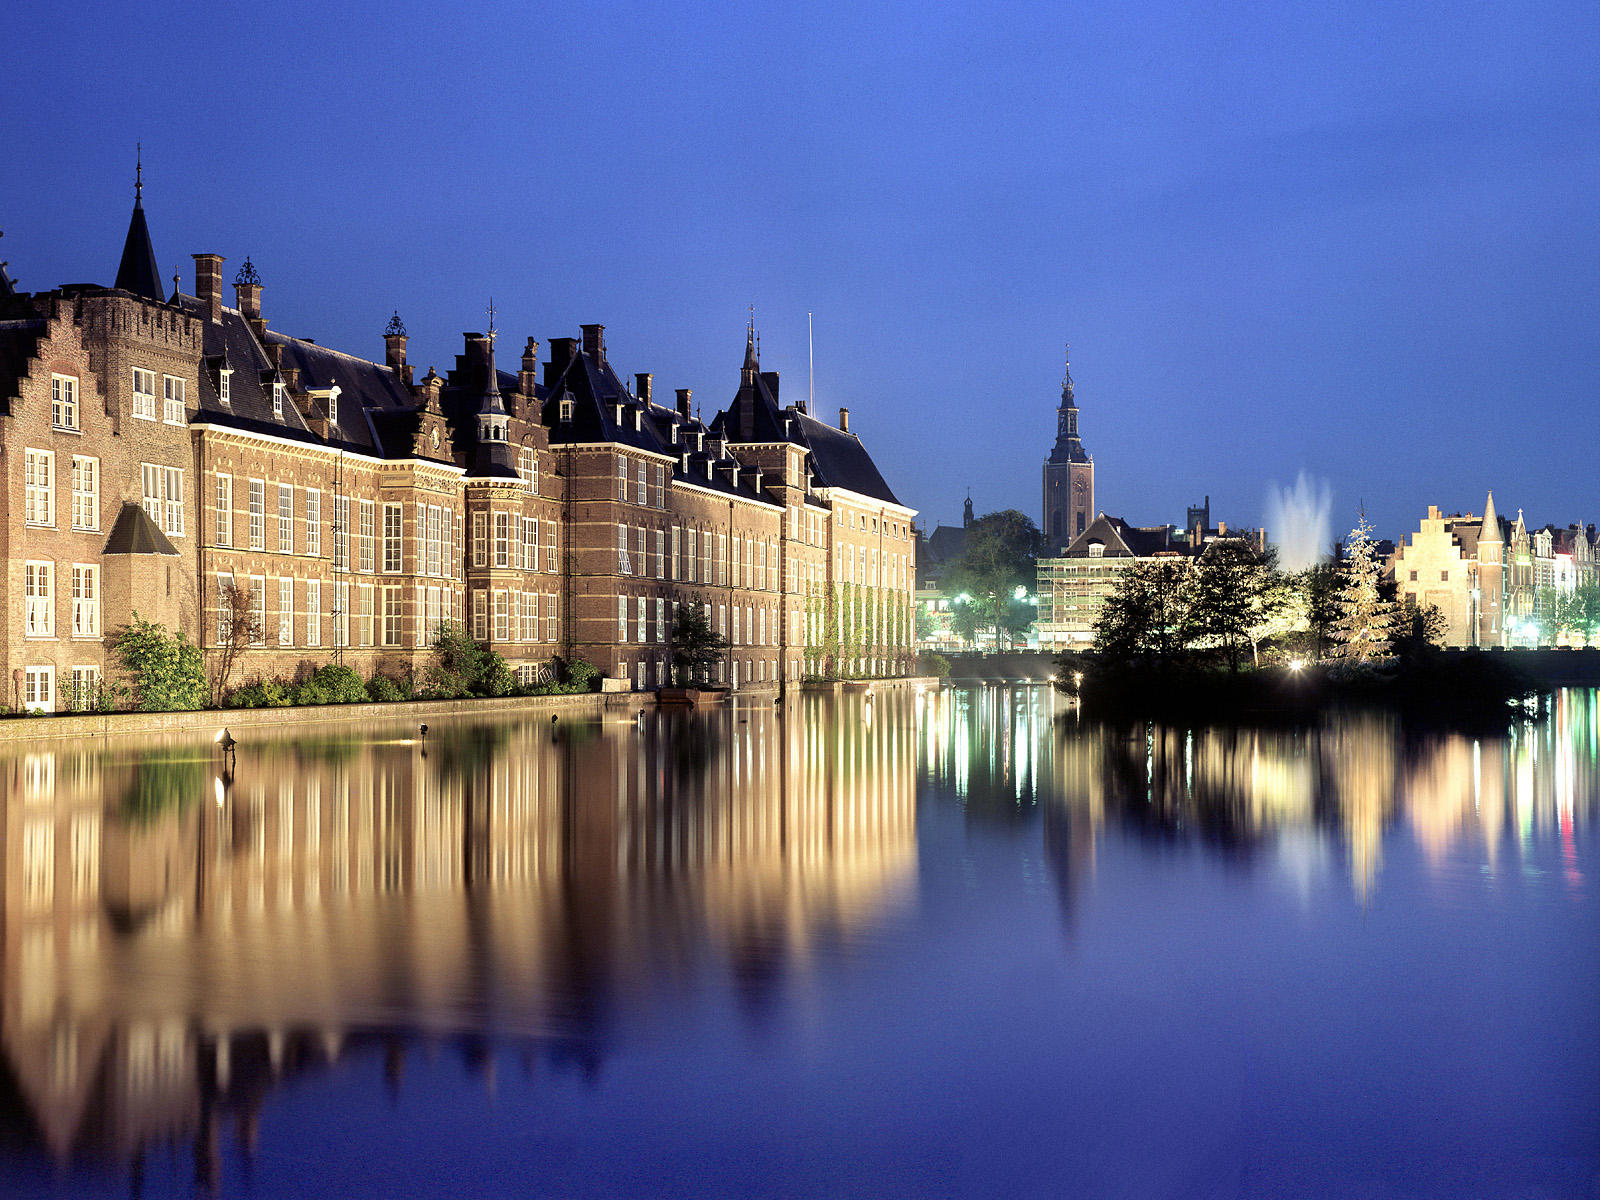 TOP WORLD TRAVEL DESTINATIONS: The Hague, Netherlands